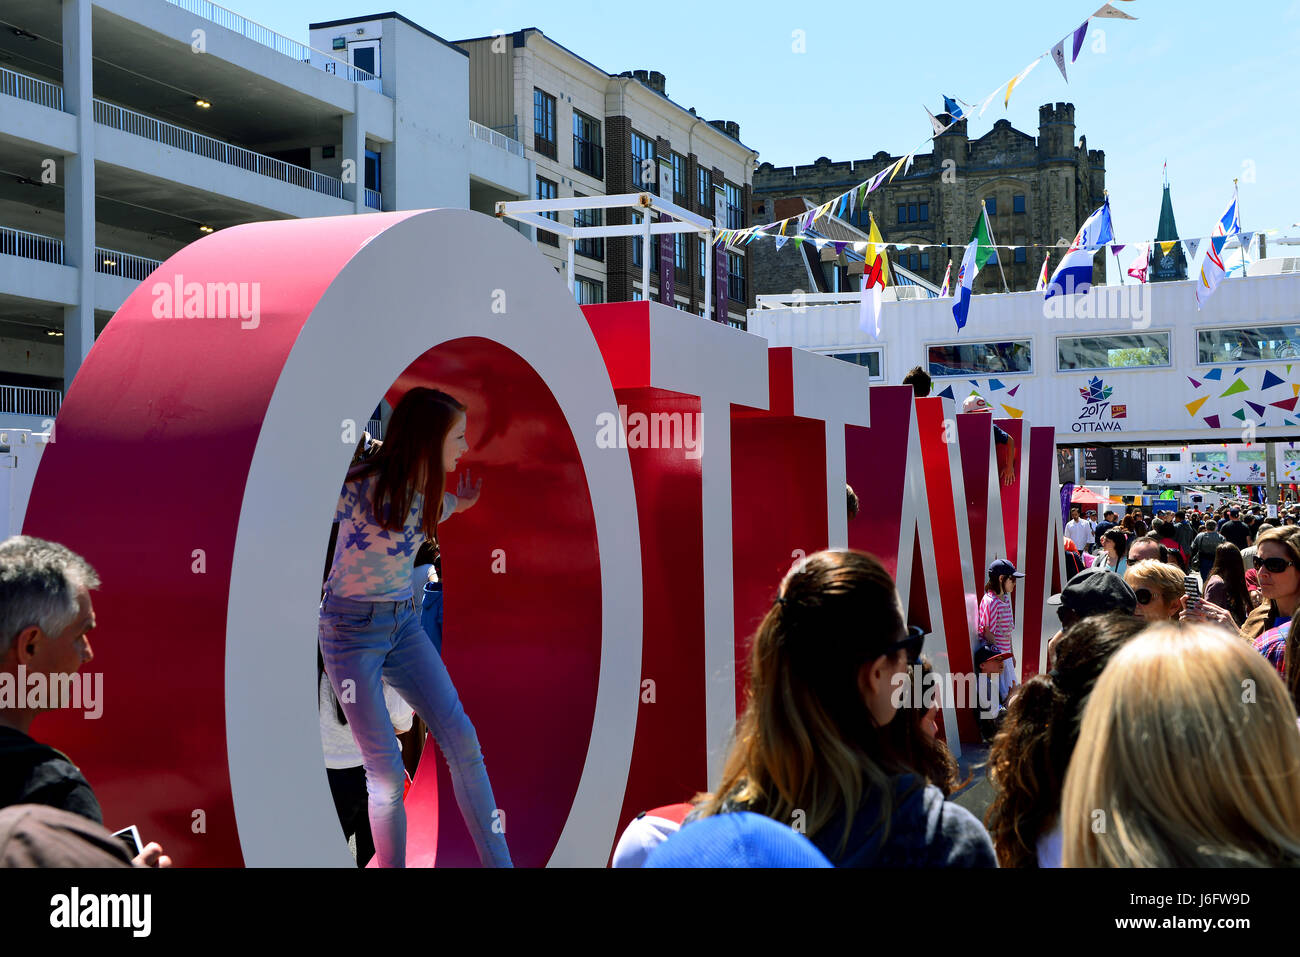 Ottawa, Canada - May 20, 2017: Inspiration Village, a temporary attraction built to help celebrate Canada's - Stock Image